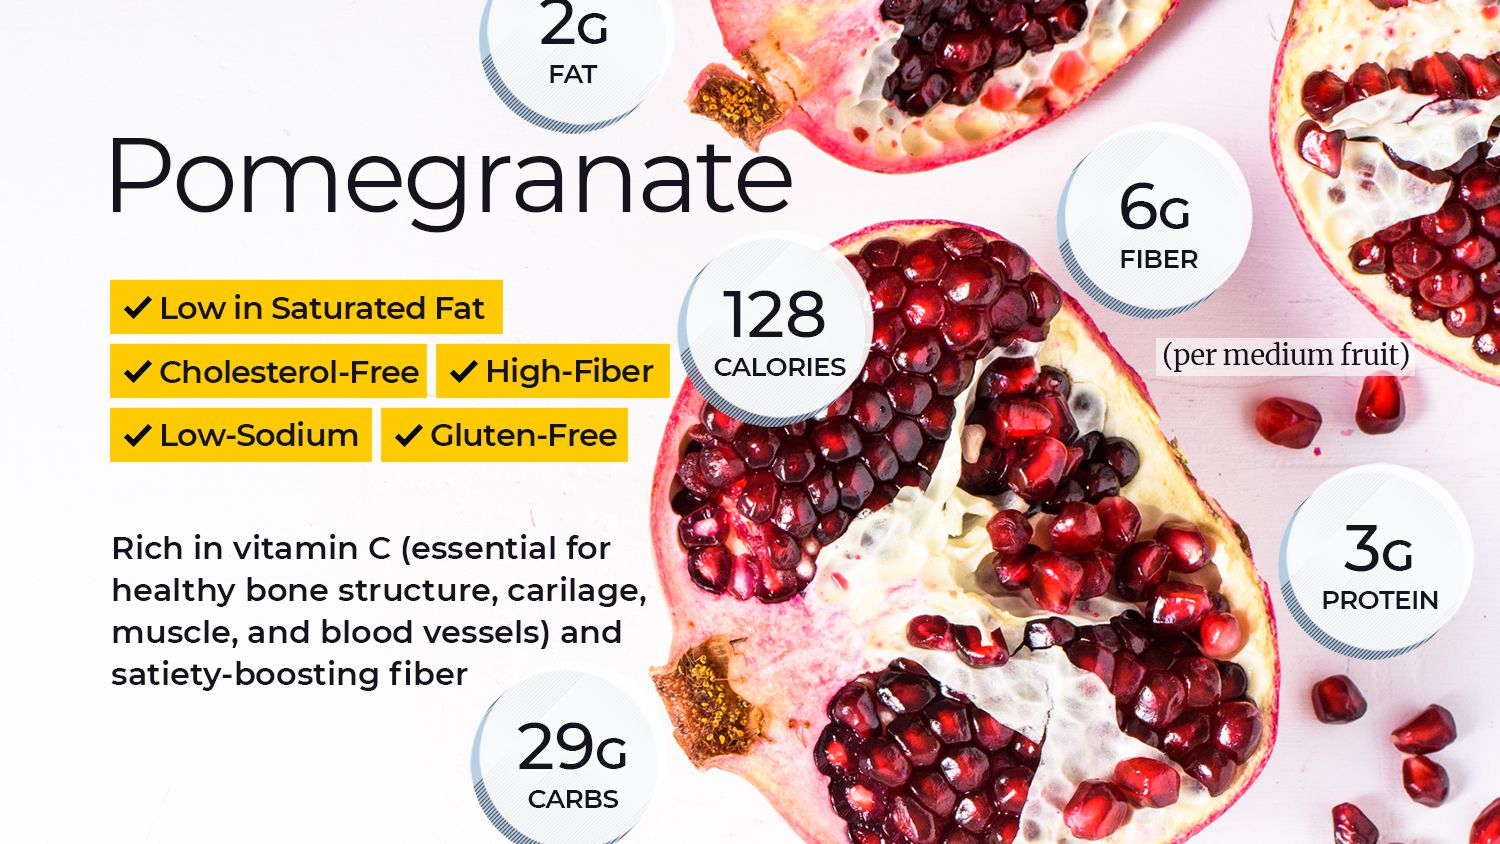 Pomegranate Health Benefits and Nutrition Facts